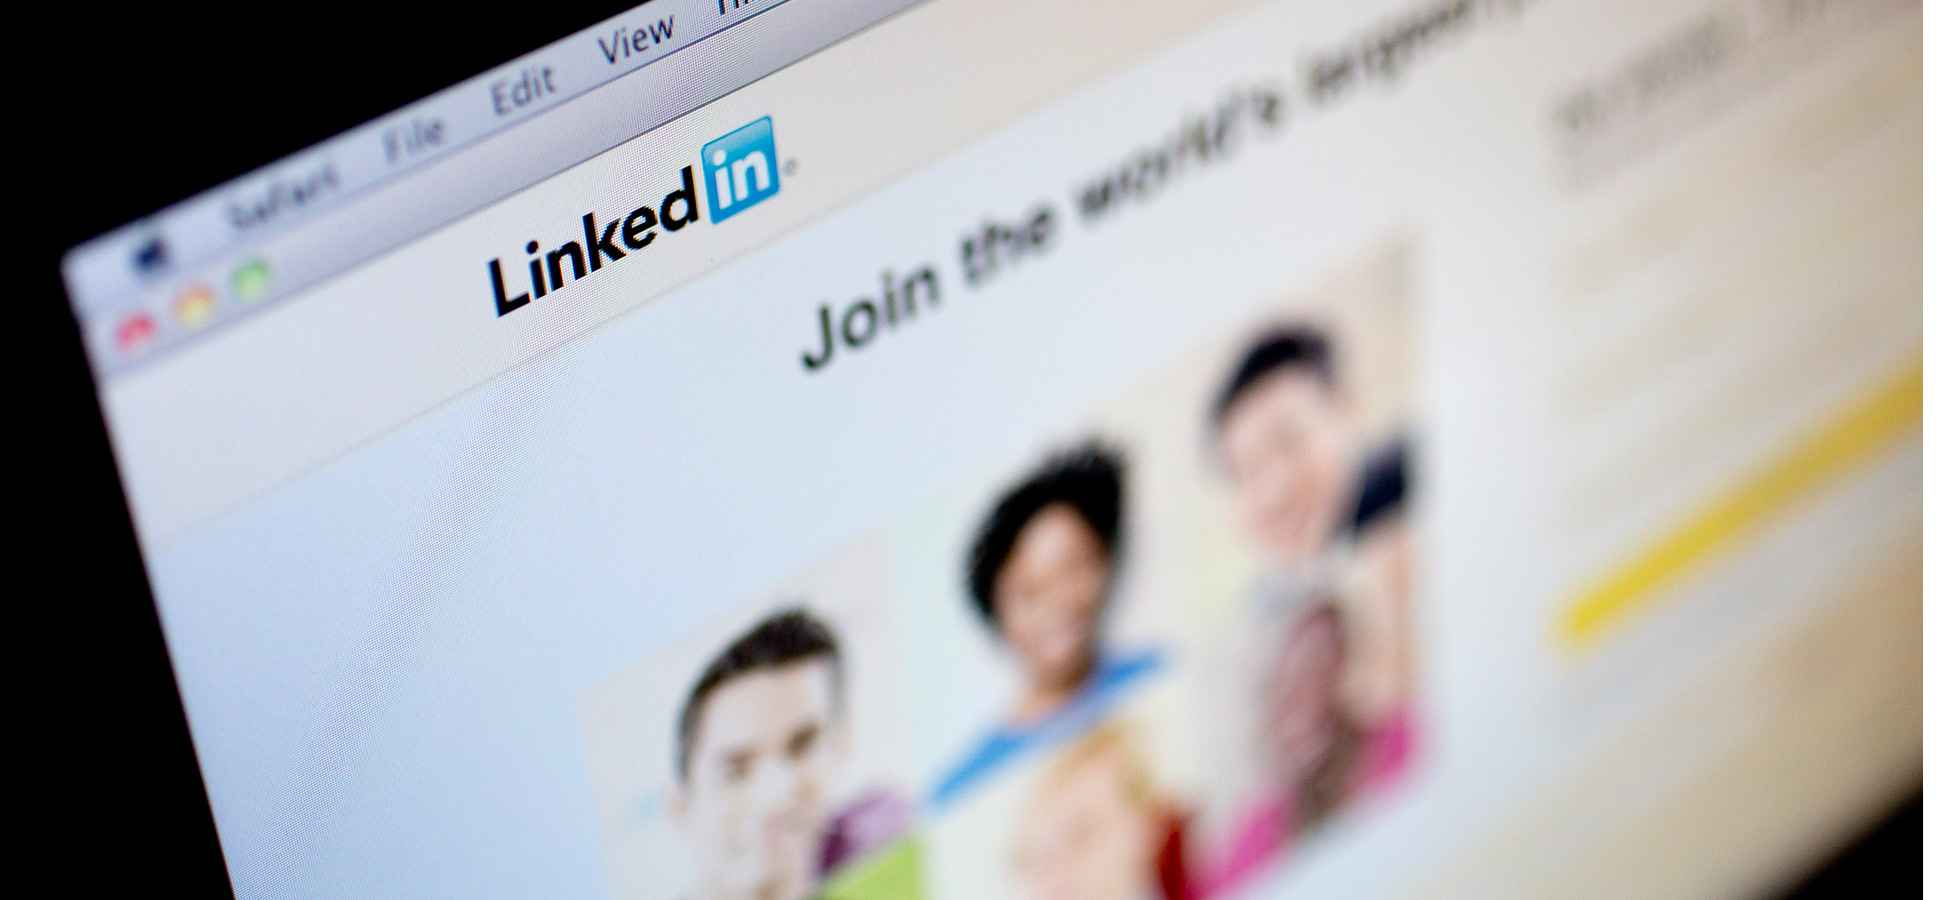 LinkedIn Update: Employees Can Now See Internal Job Openings